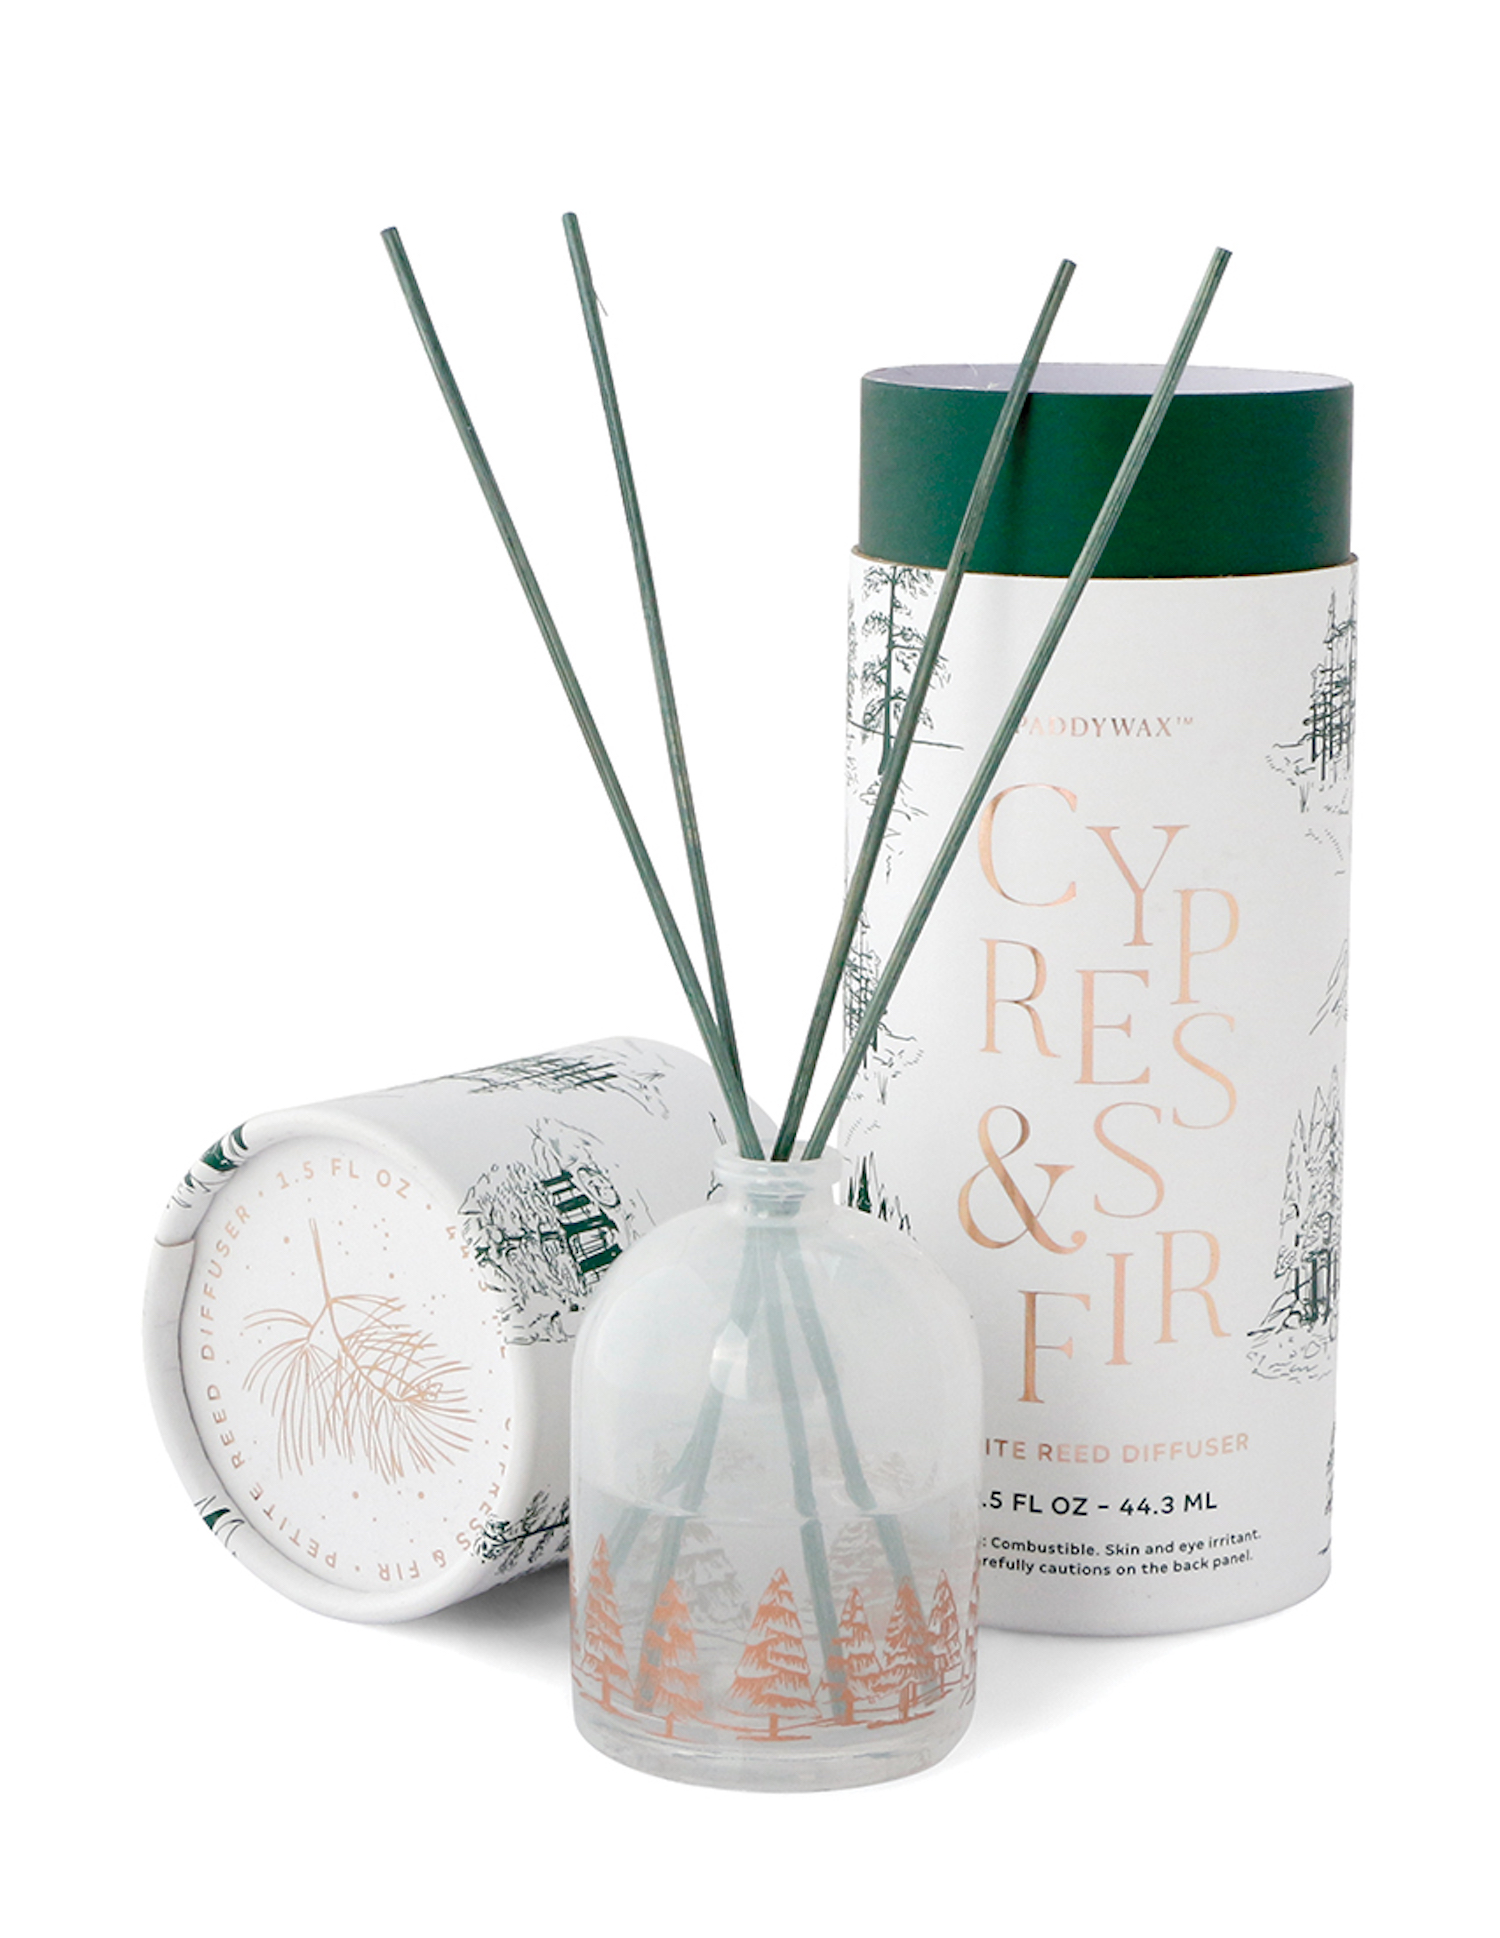 Cypress & Fir - Paddywax Mini Reed Diffuser - 1.5oz